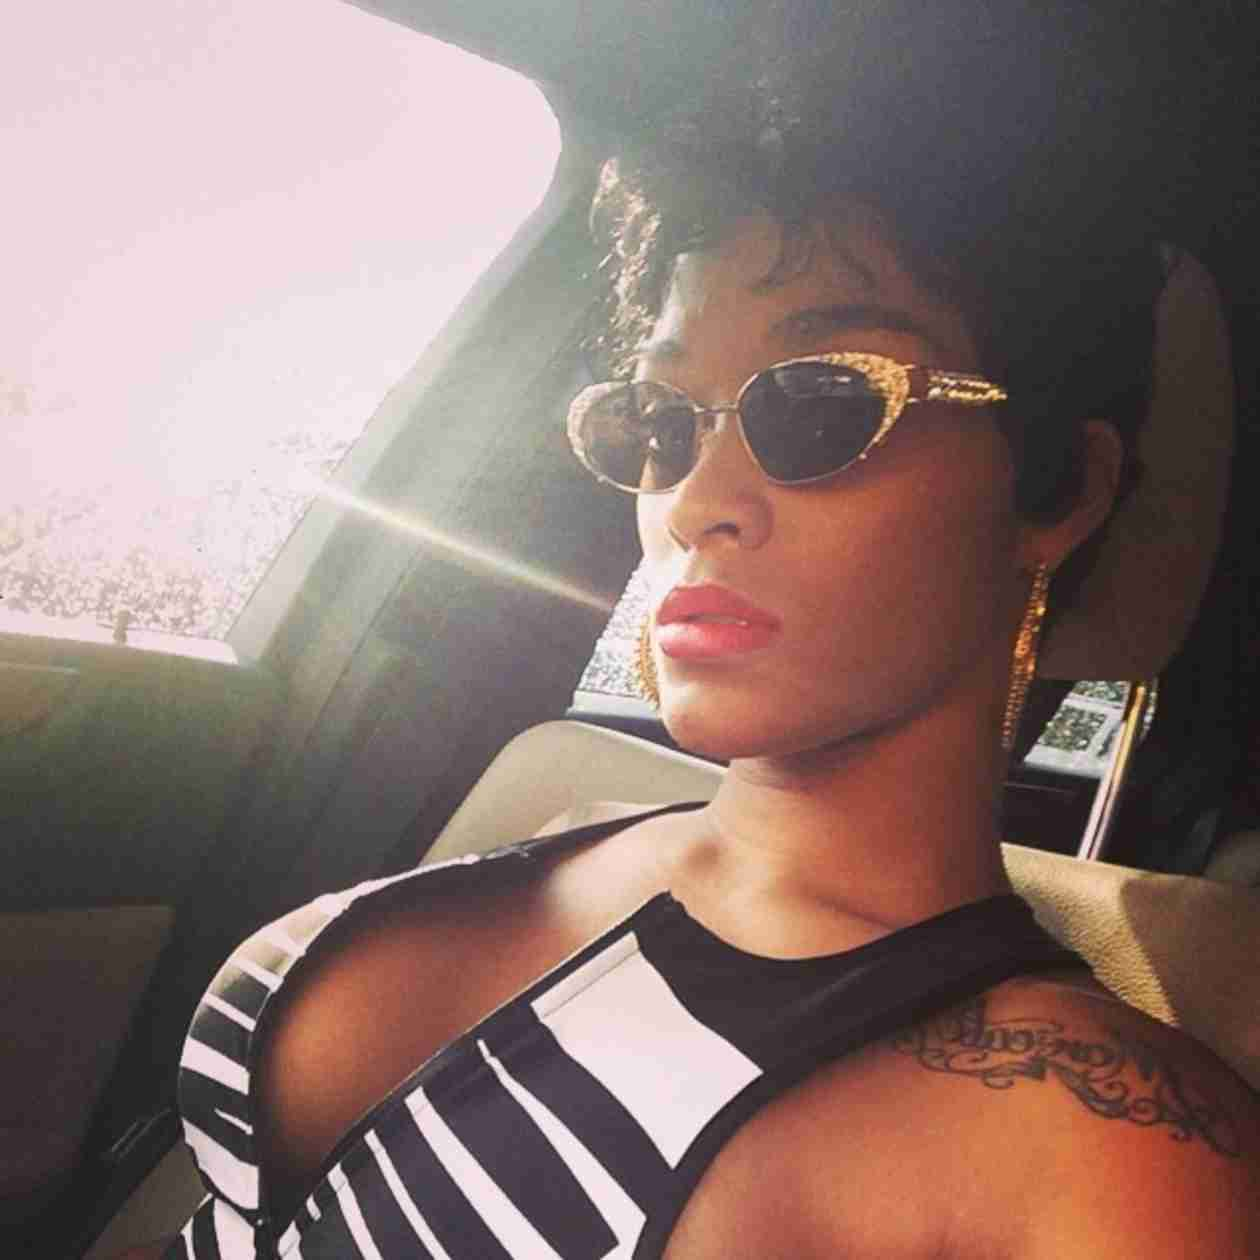 Joseline Hernandez Talks Keeping Things Positive in Her Life Amid Drama